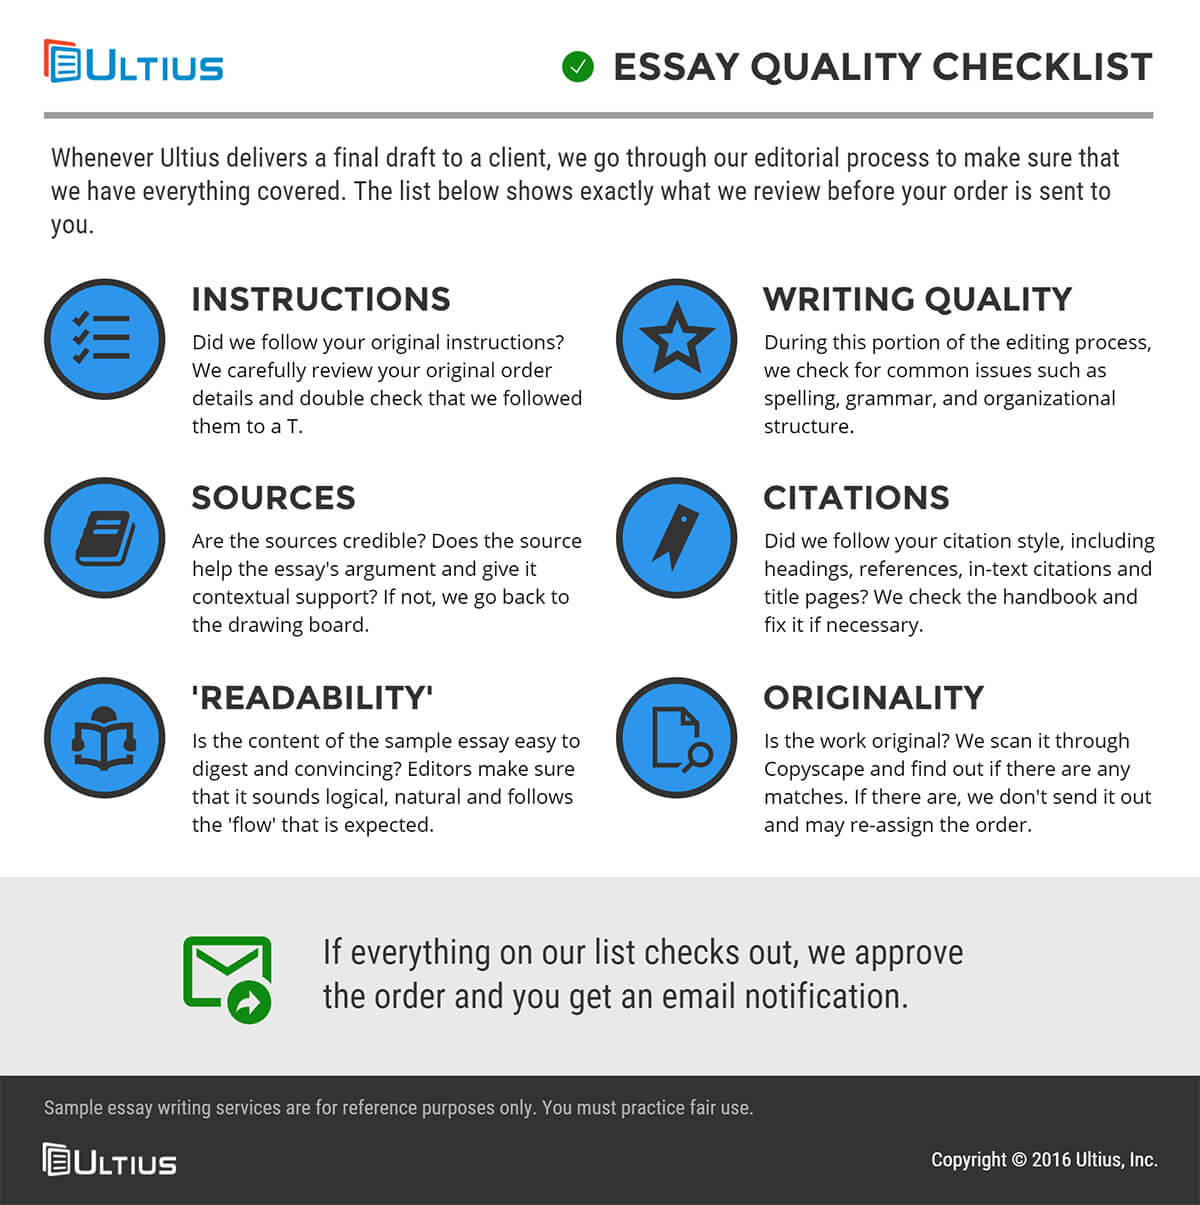 004 Essay Example Writing Services Quality Stunning Canada Plagiarism Editing Full